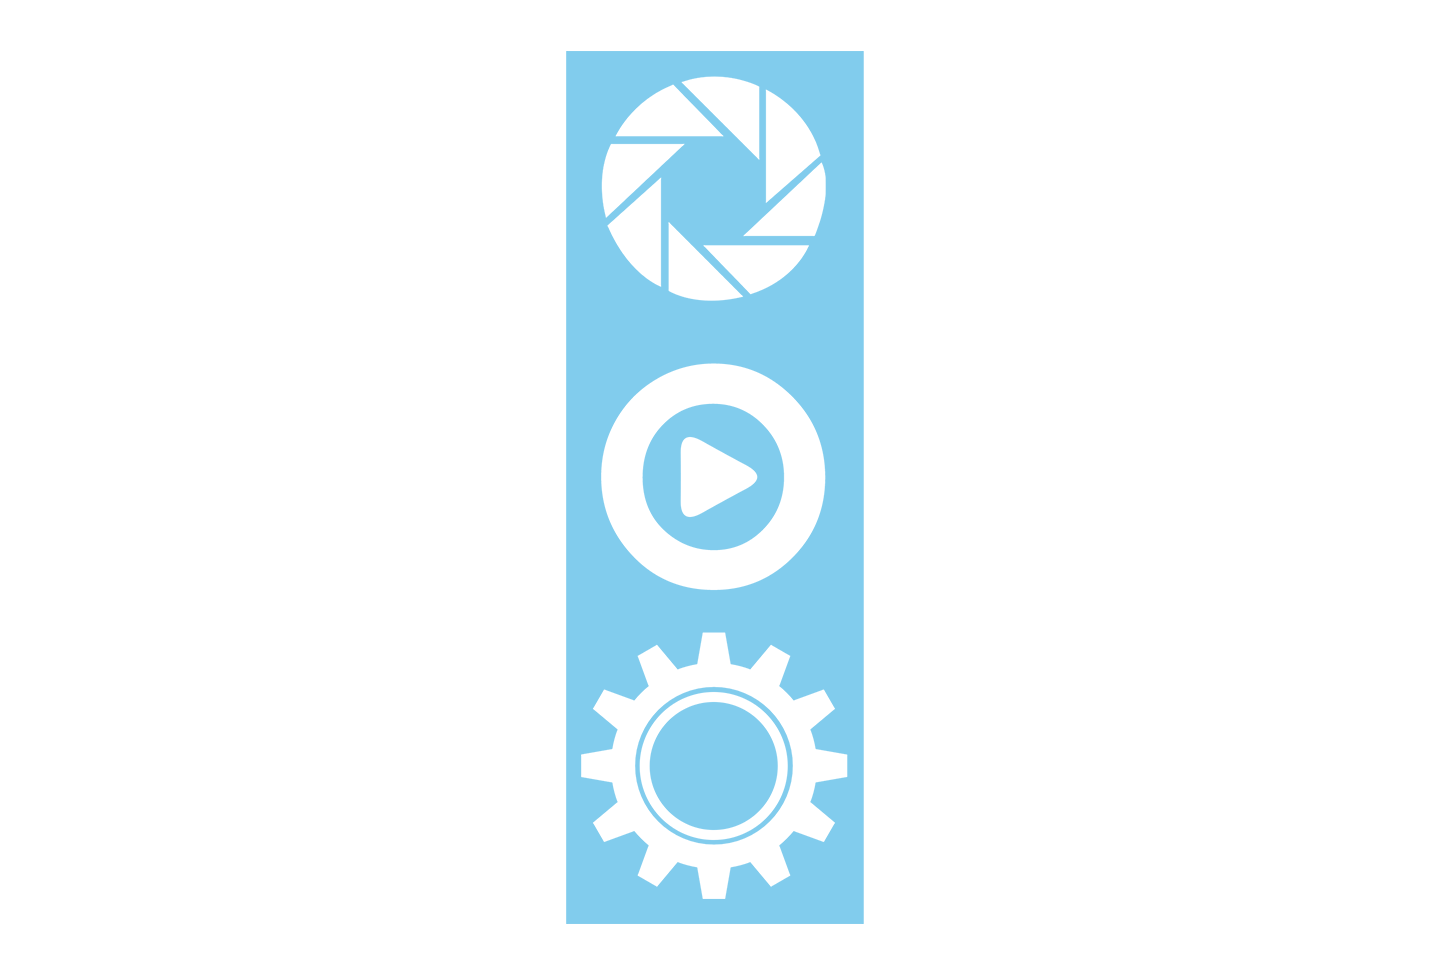 SHOOT | POST | SOLVE